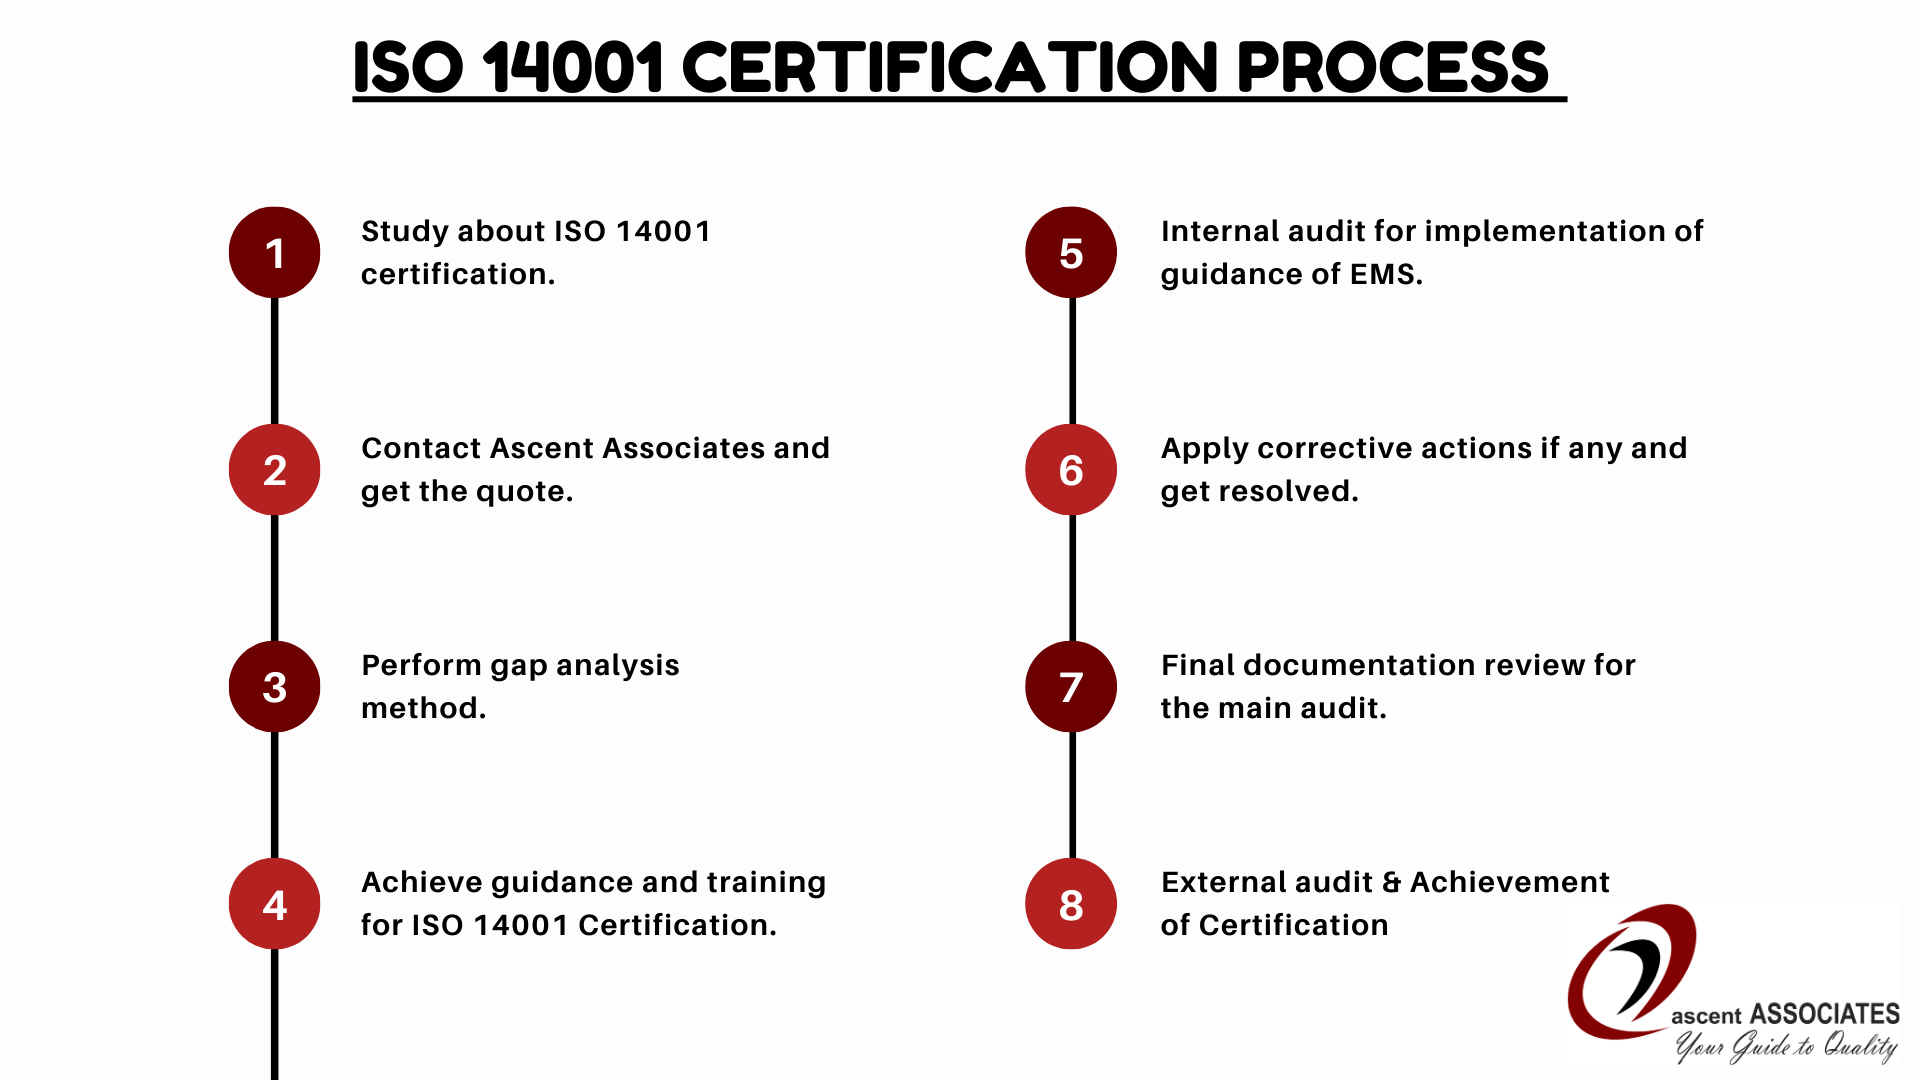 ISO 14001 Certification process